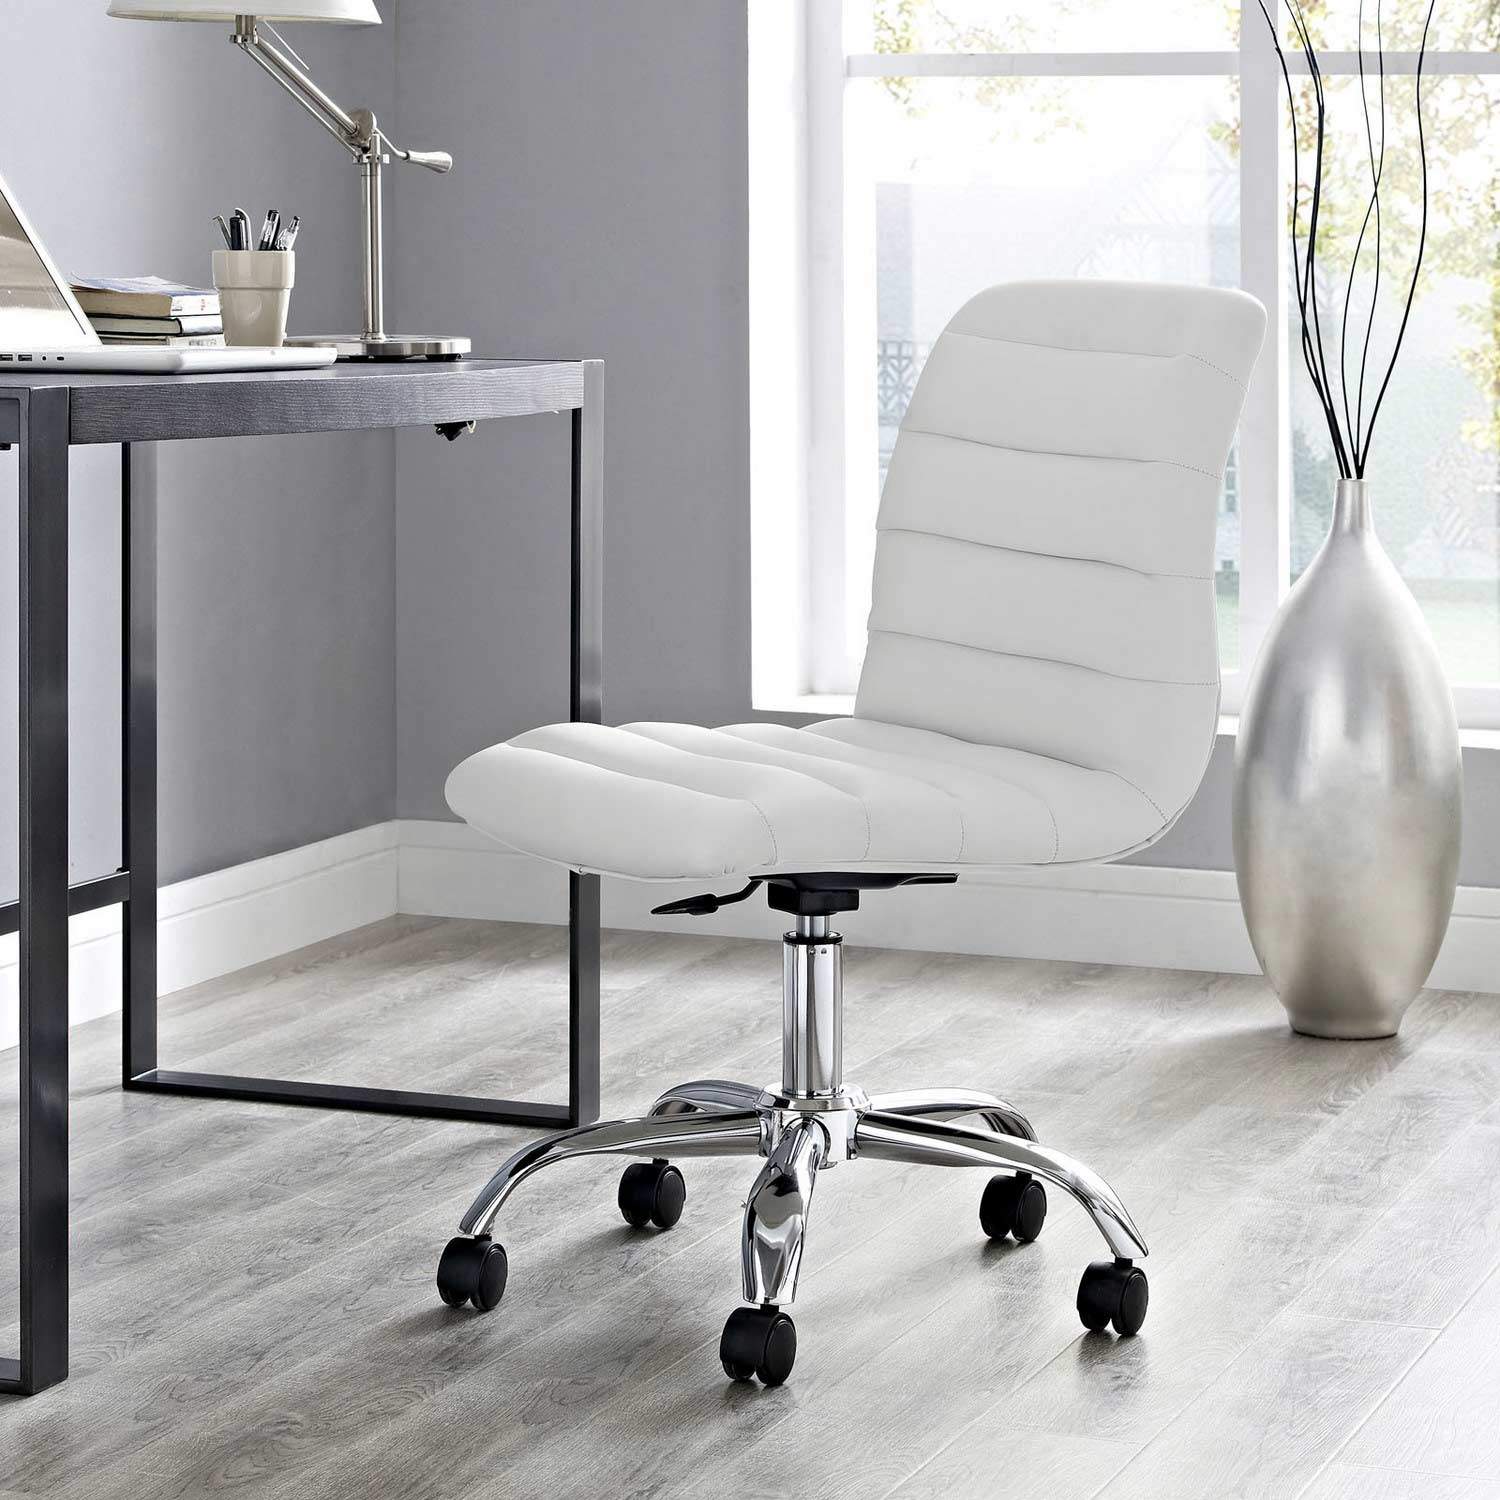 conference room chairs without wheels toys are us baby modway ripple armless mid back office chair white mw eei